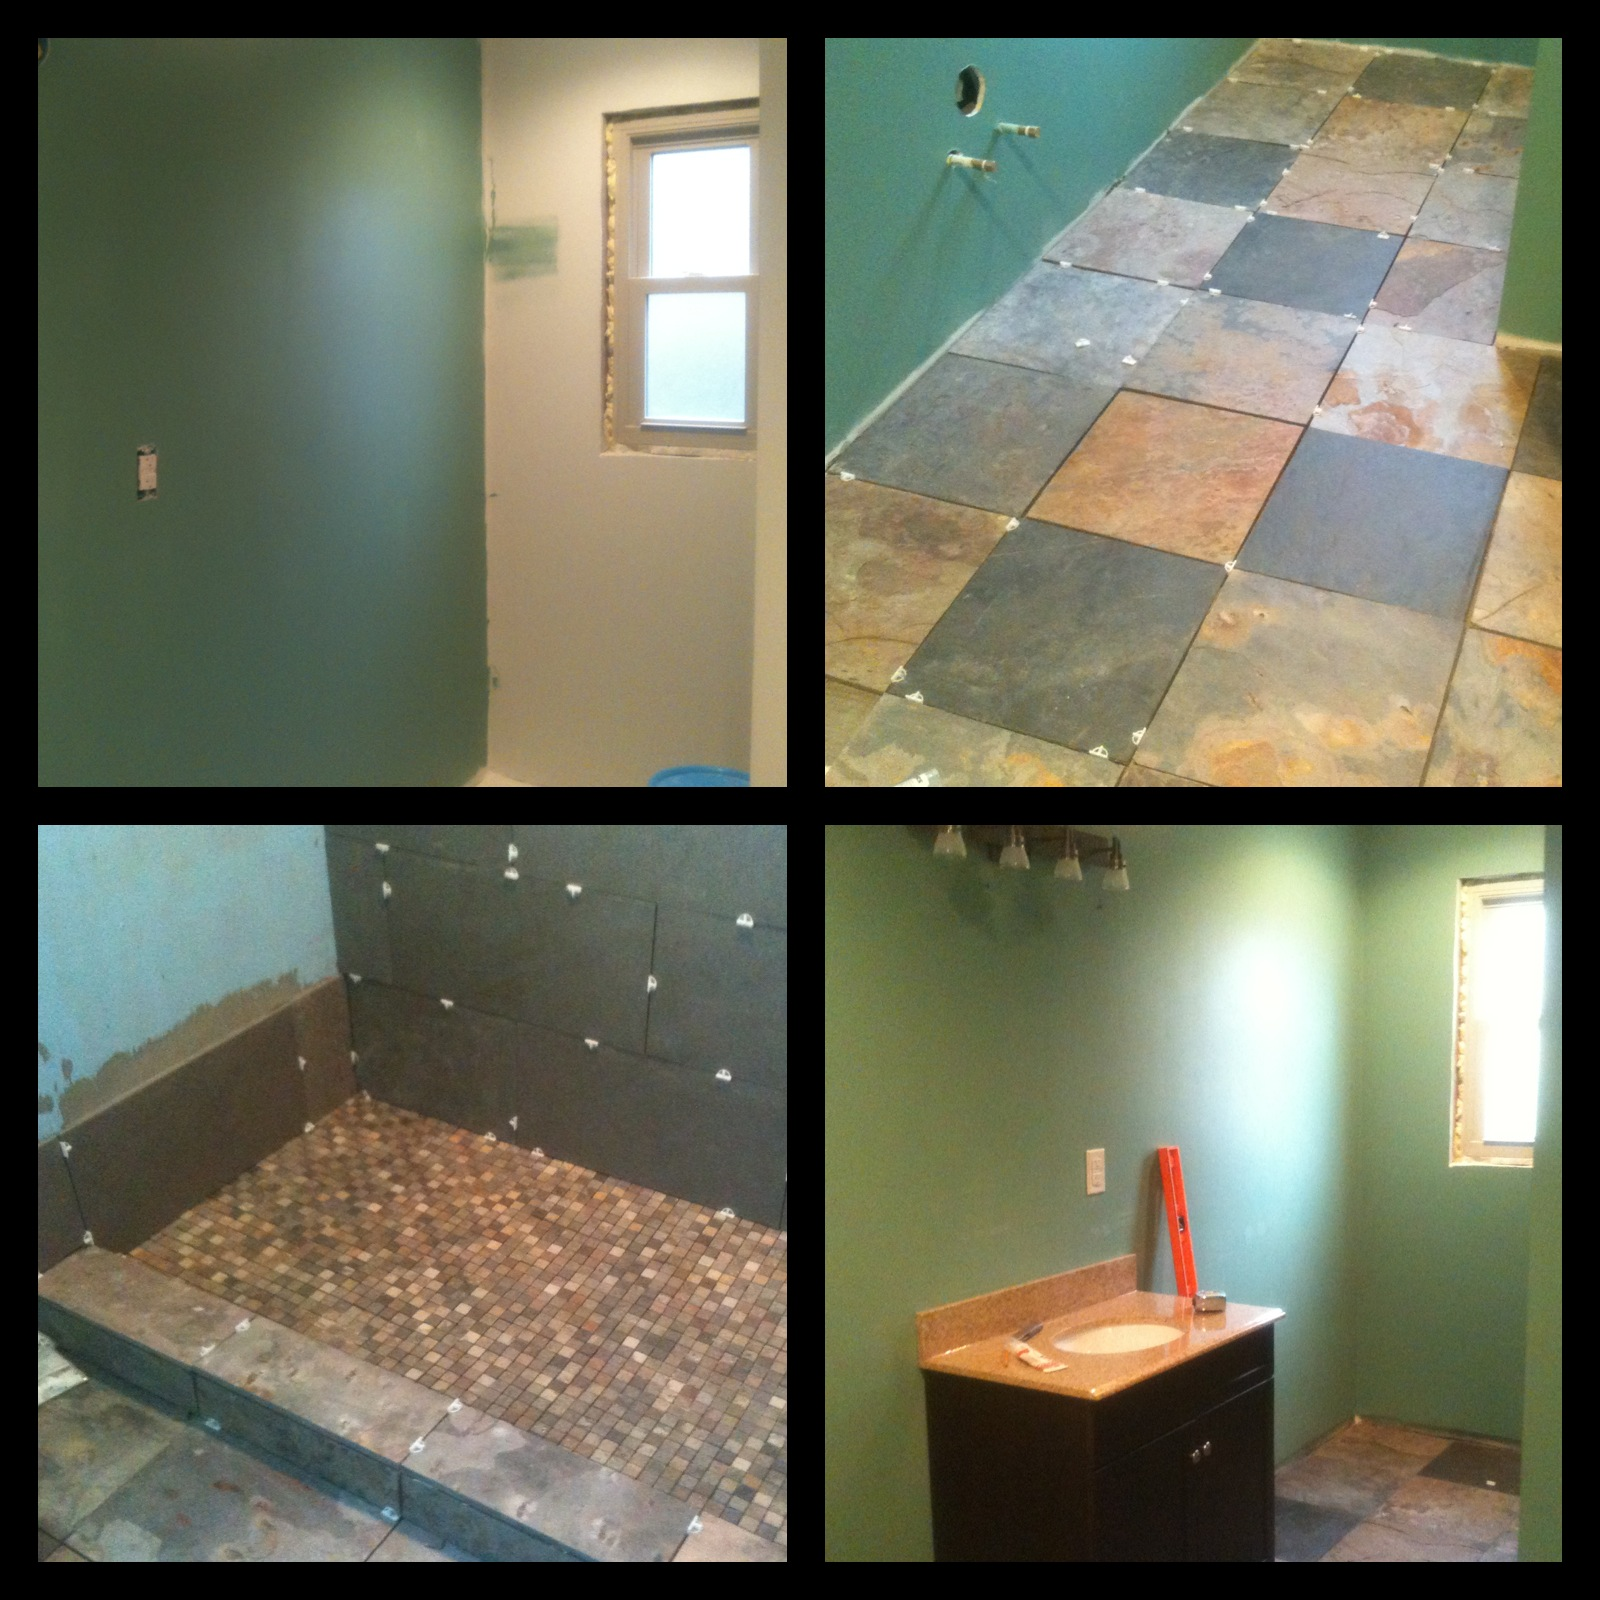 Ms markdown diy bathroom remodel Bathroom diy remodel